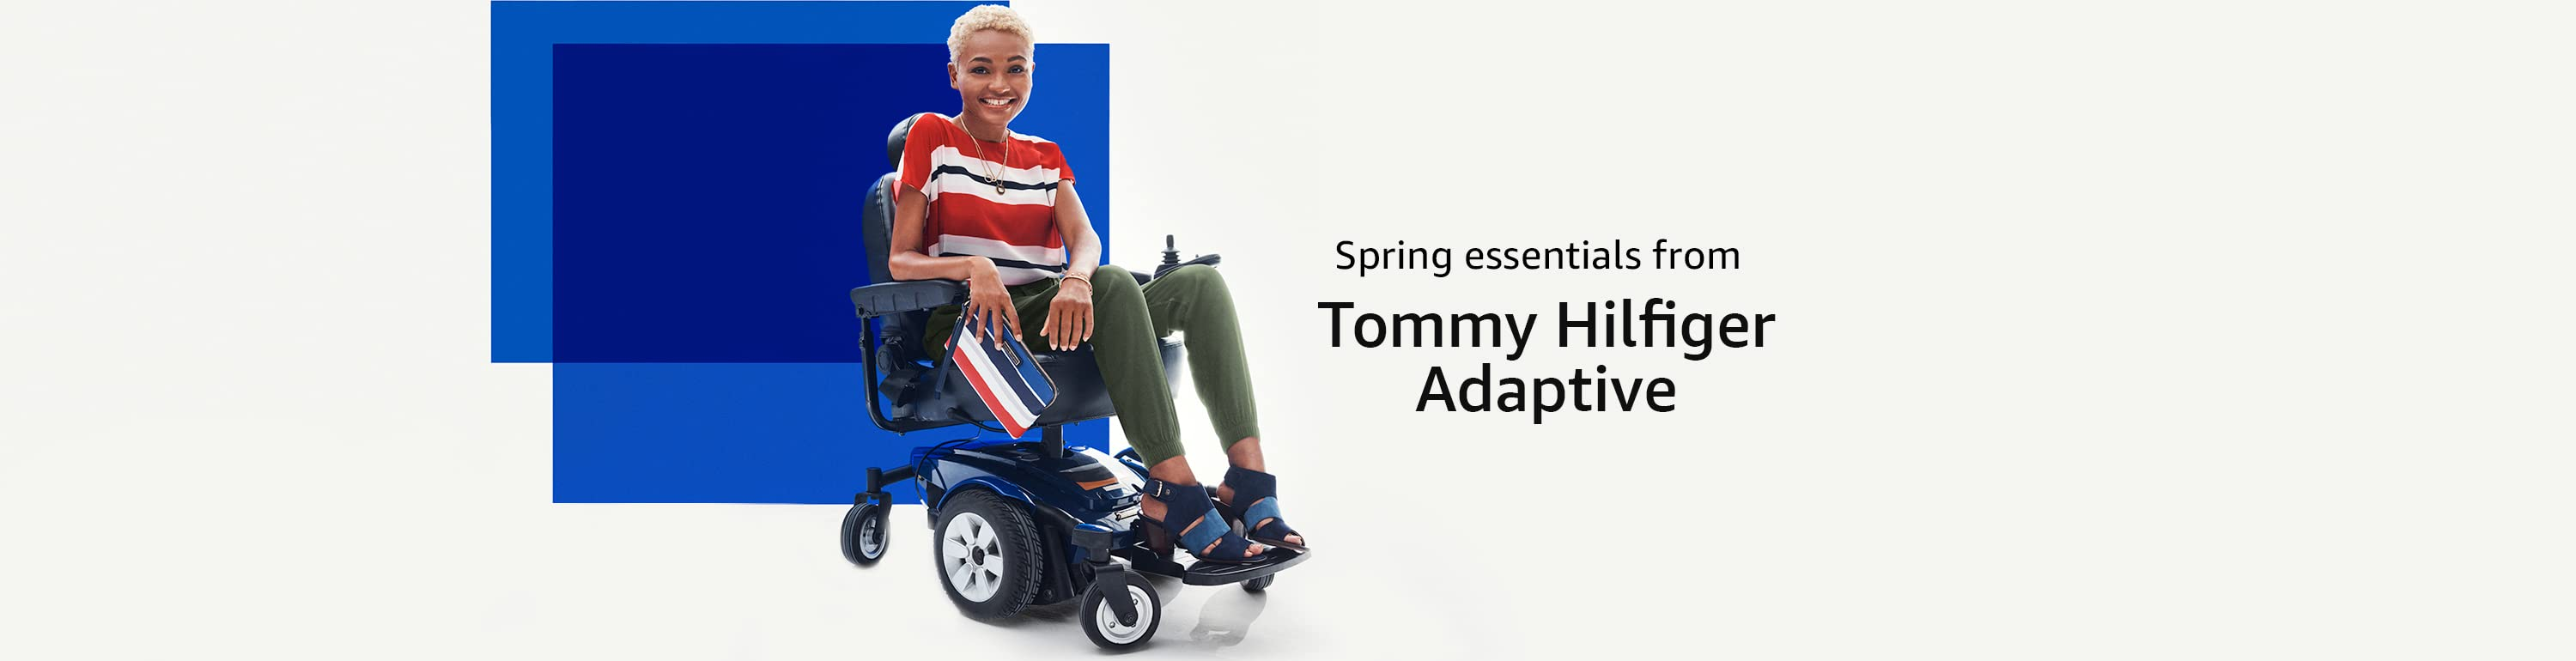 Spring essentials from Tommy Hilfiger Adaptive